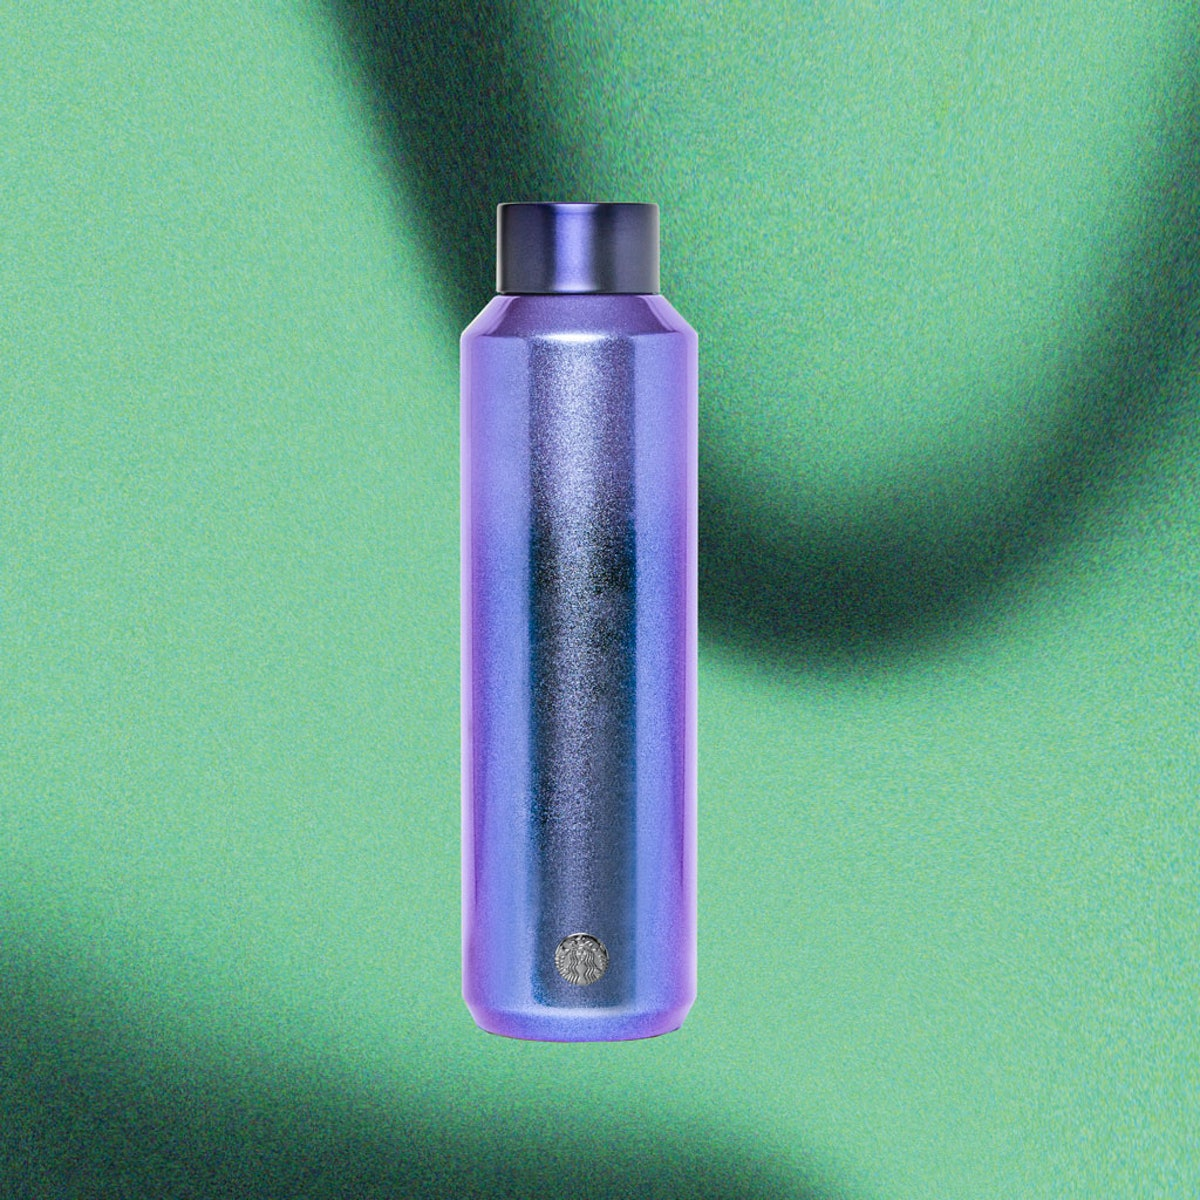 Starbucks' Holiday 2020 tumblers and cold cups include a shimmery Purple Water Bottle.